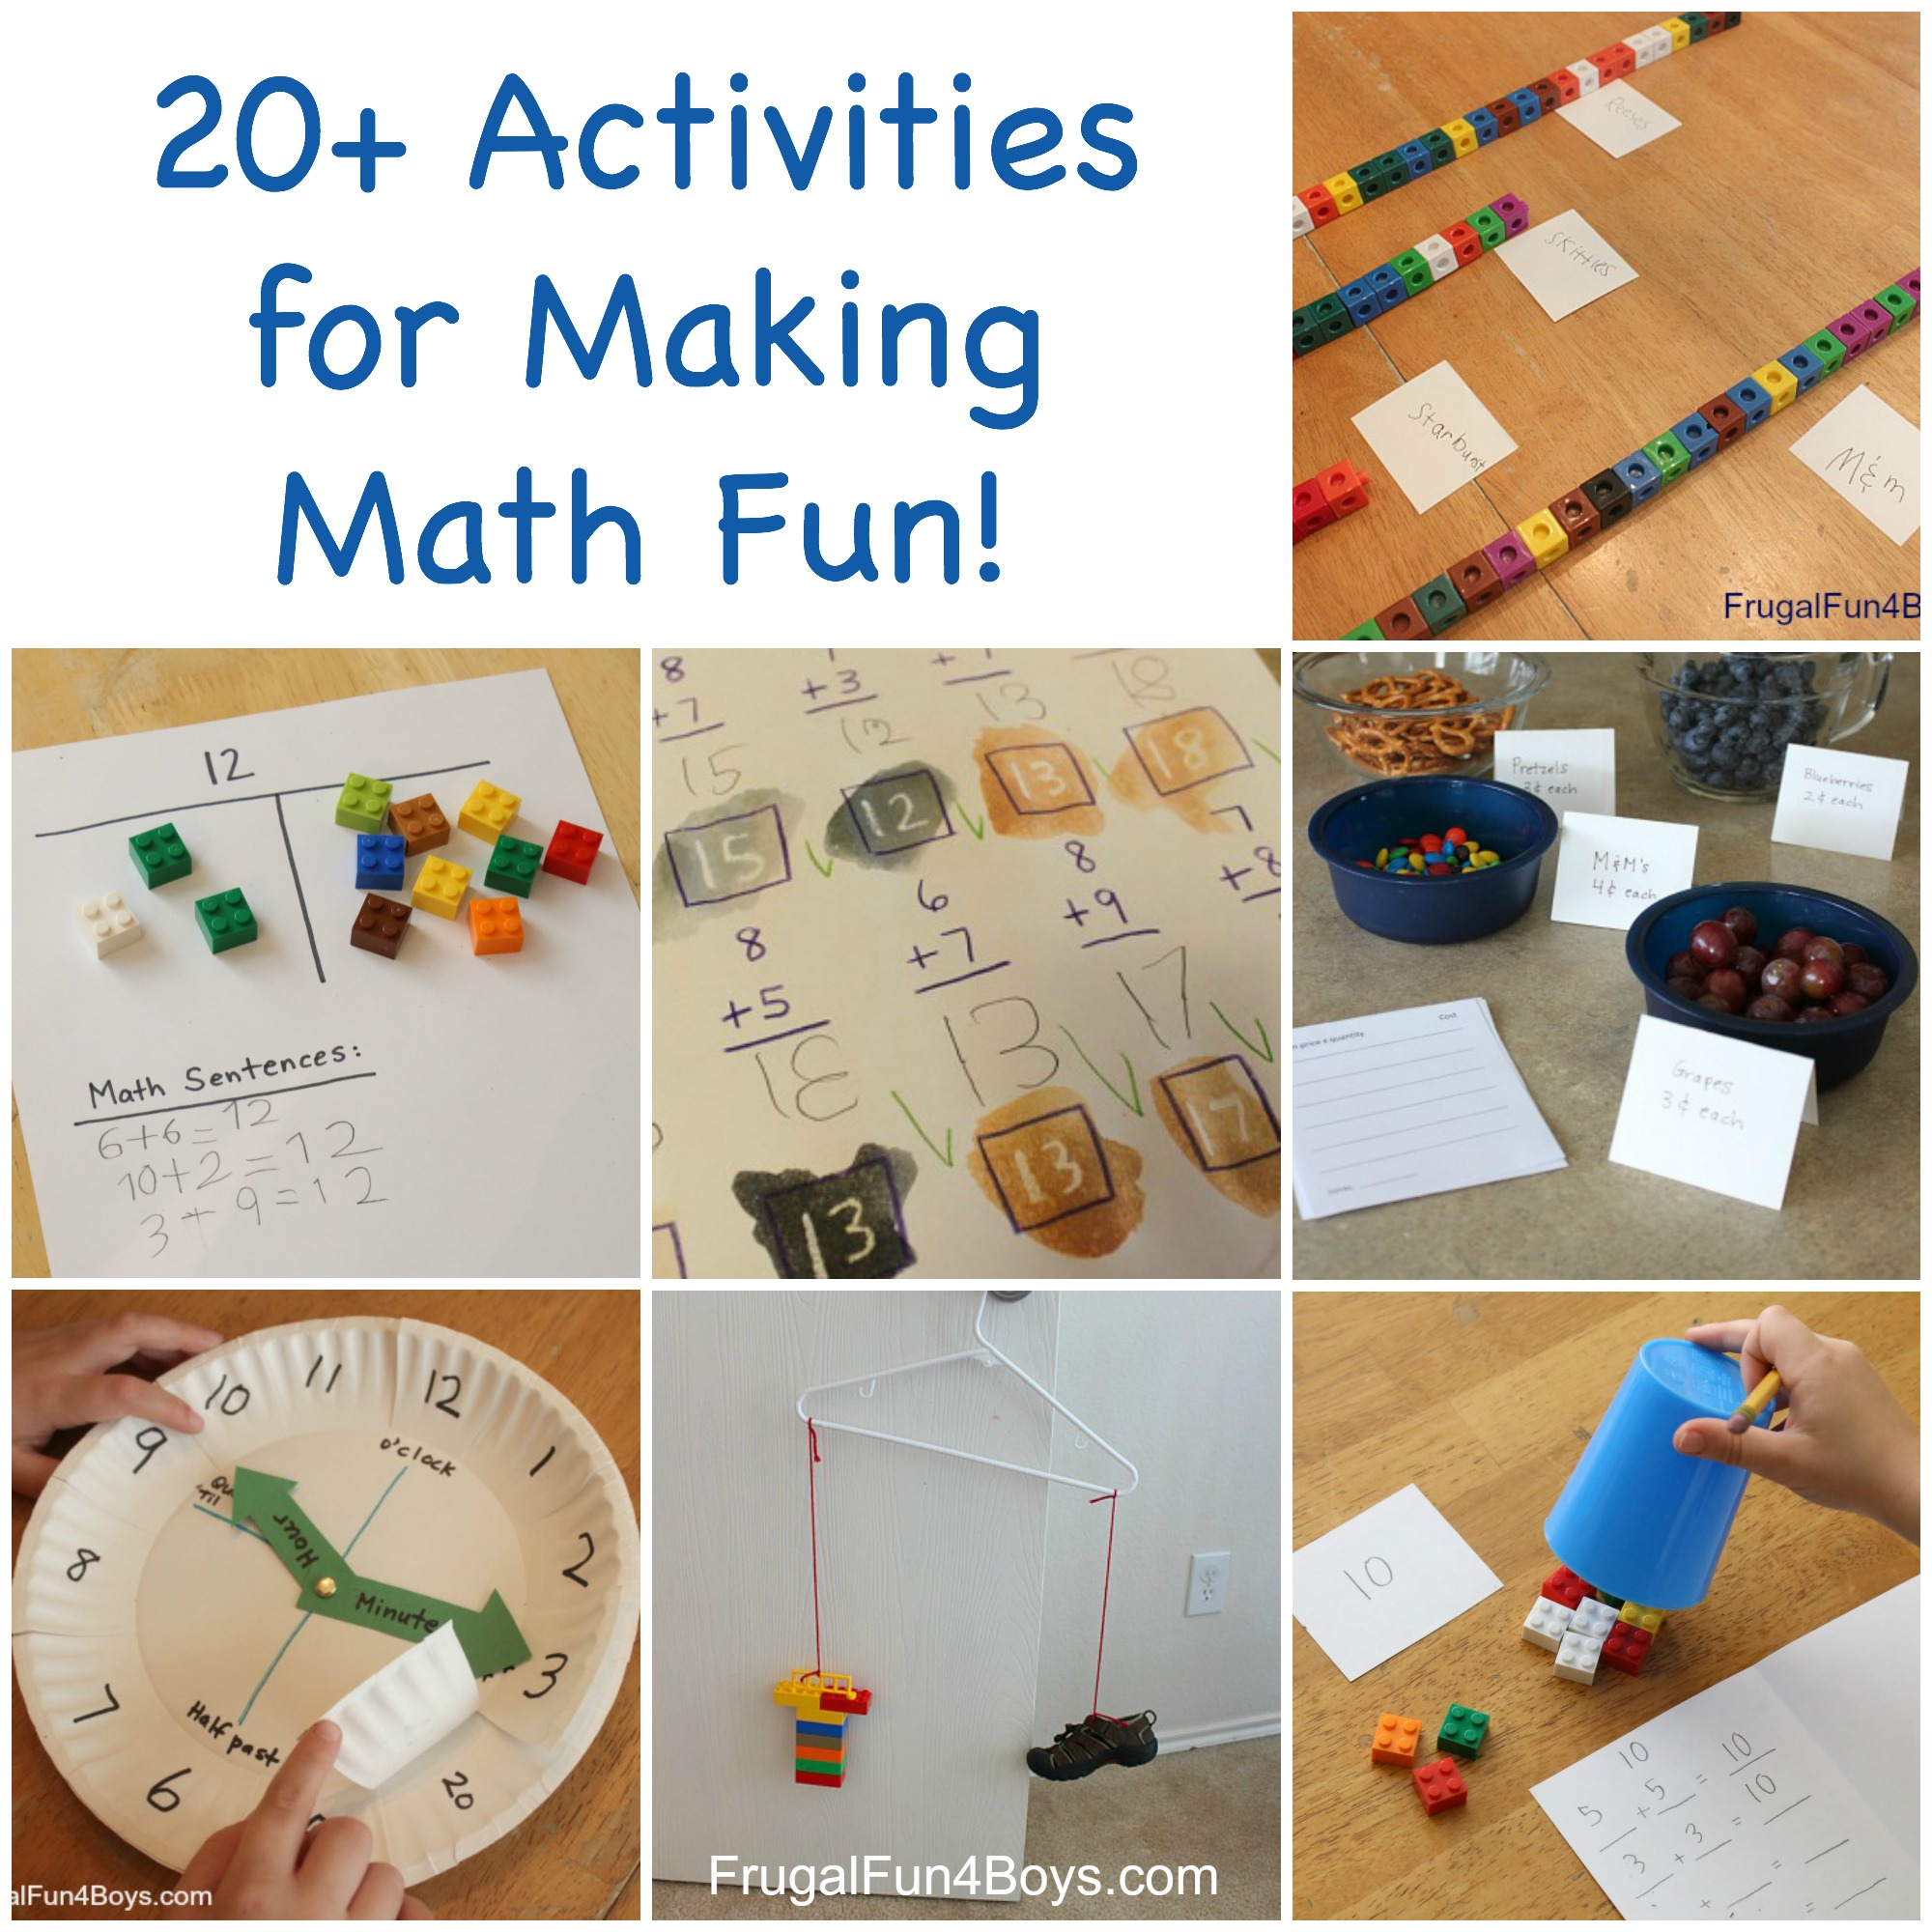 20+ Hands On Activities for Making Math Fun!